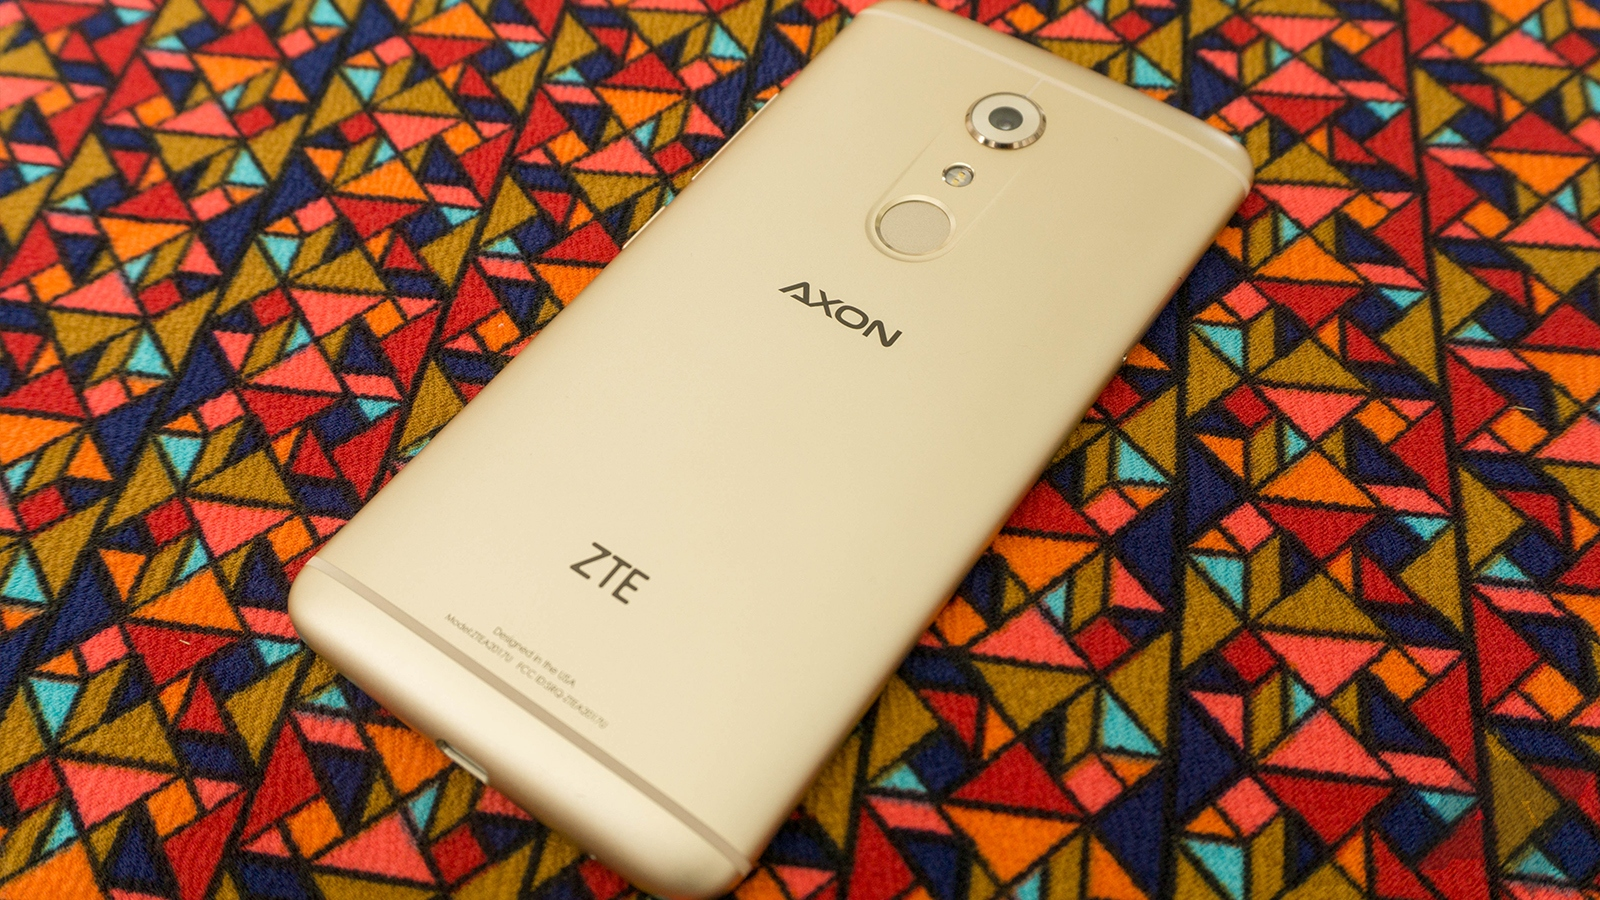 Some Android devices from ZTE, Archos, and others shipping